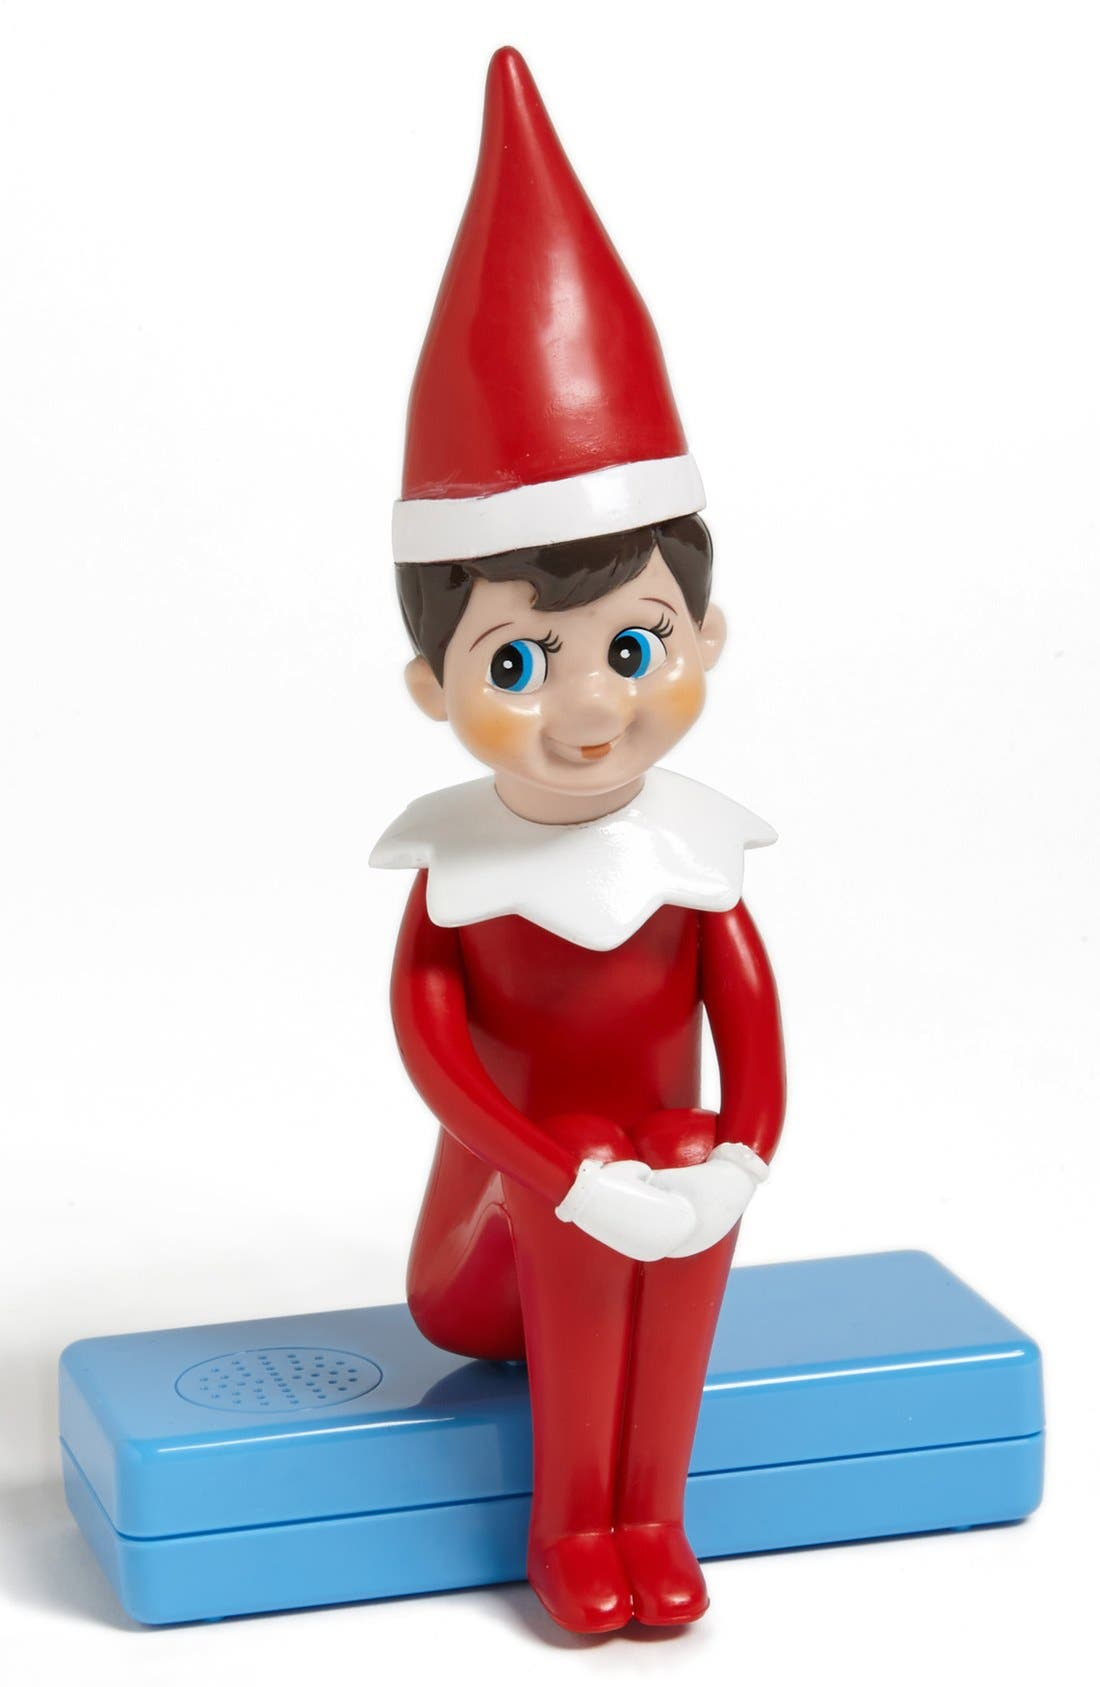 Alternate Image 1 Selected - Pressman Toy 'The Elf on the Shelf® - Musical Hide & Seek' Game